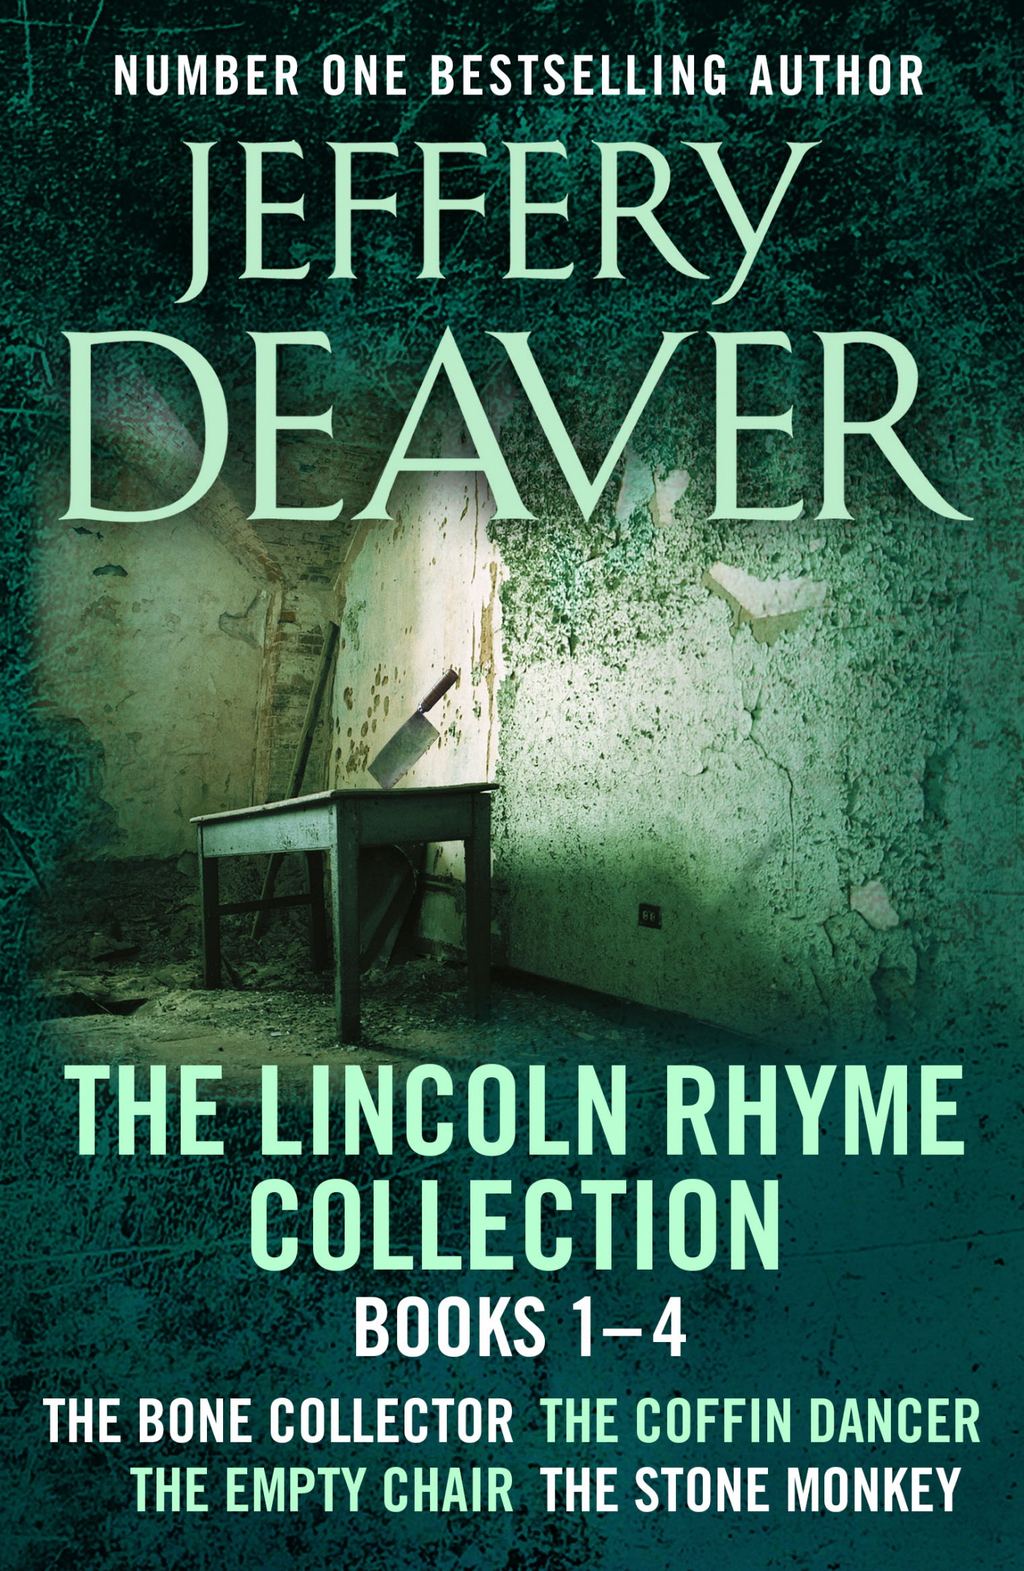 The Lincoln Rhyme Collection 1-4 The Bone Collector, The Coffin Dancer, The Empty Chair, The Stone Monkey